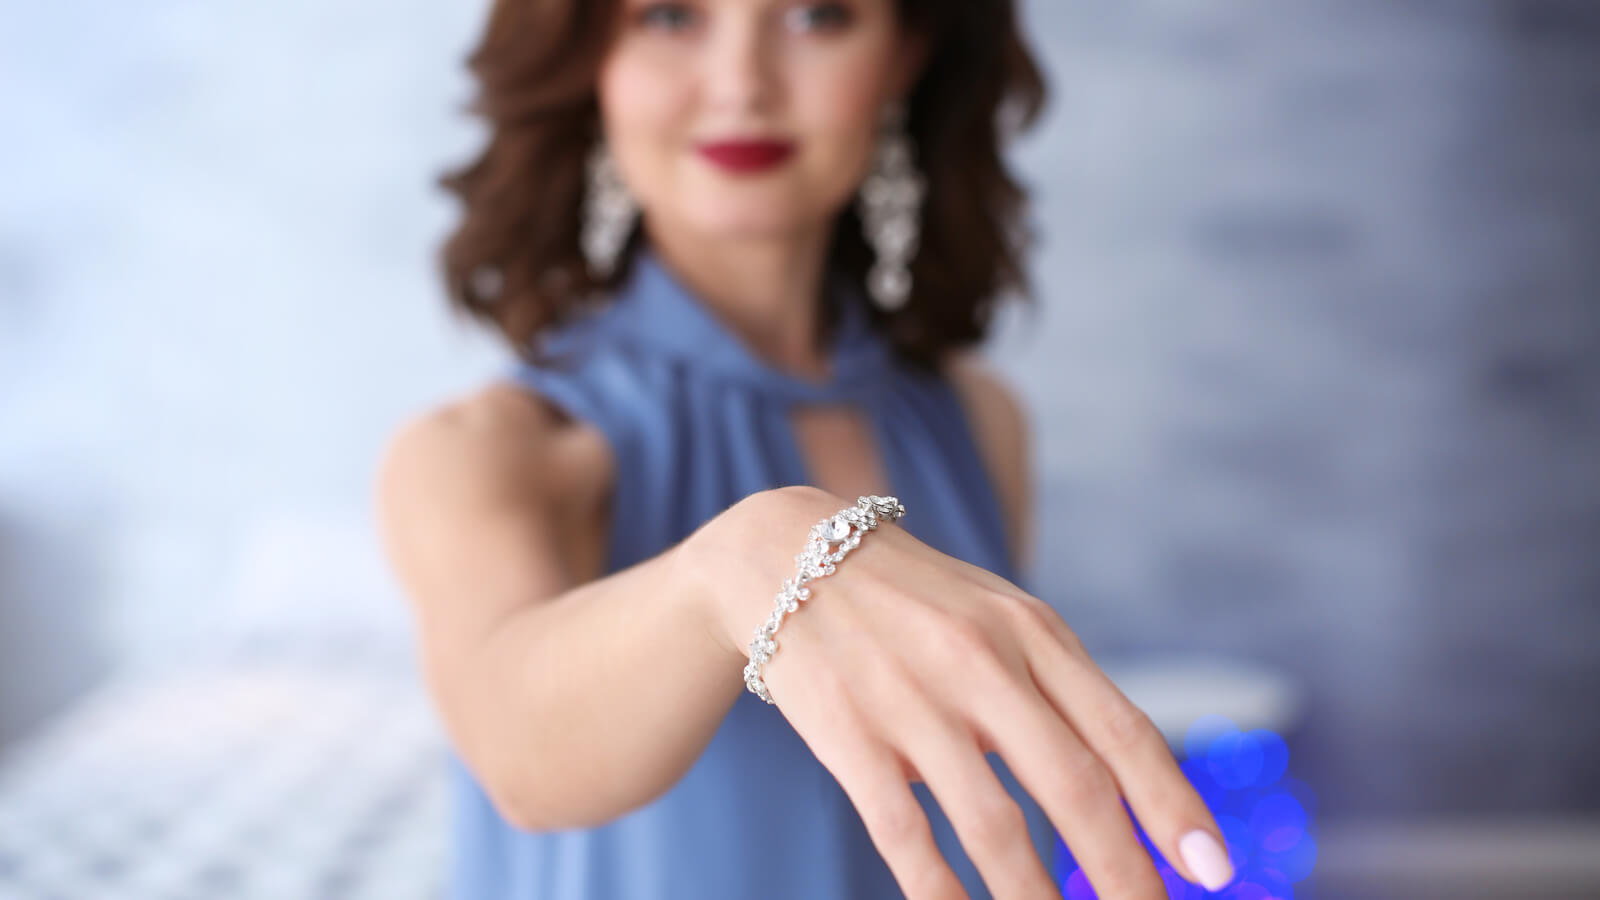 Young woman showing her beautiful diamond bracelet